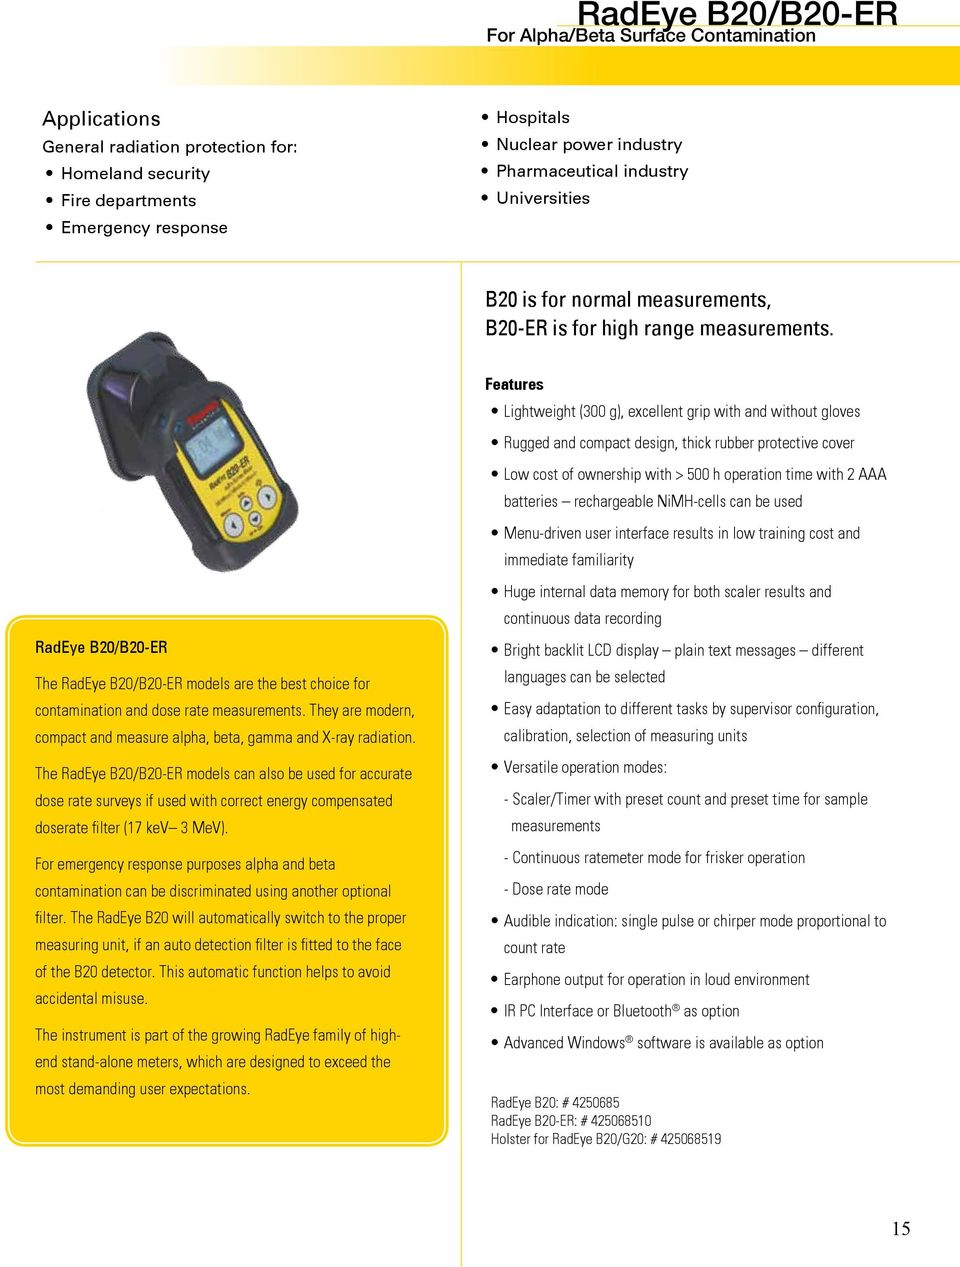 RadEye B20/B20-ER The RadEye B20/B20-ER models are the best choice for contamination and dose rate measurements. They are modern, compact and measure alpha, beta, gamma and X-ray radiation.